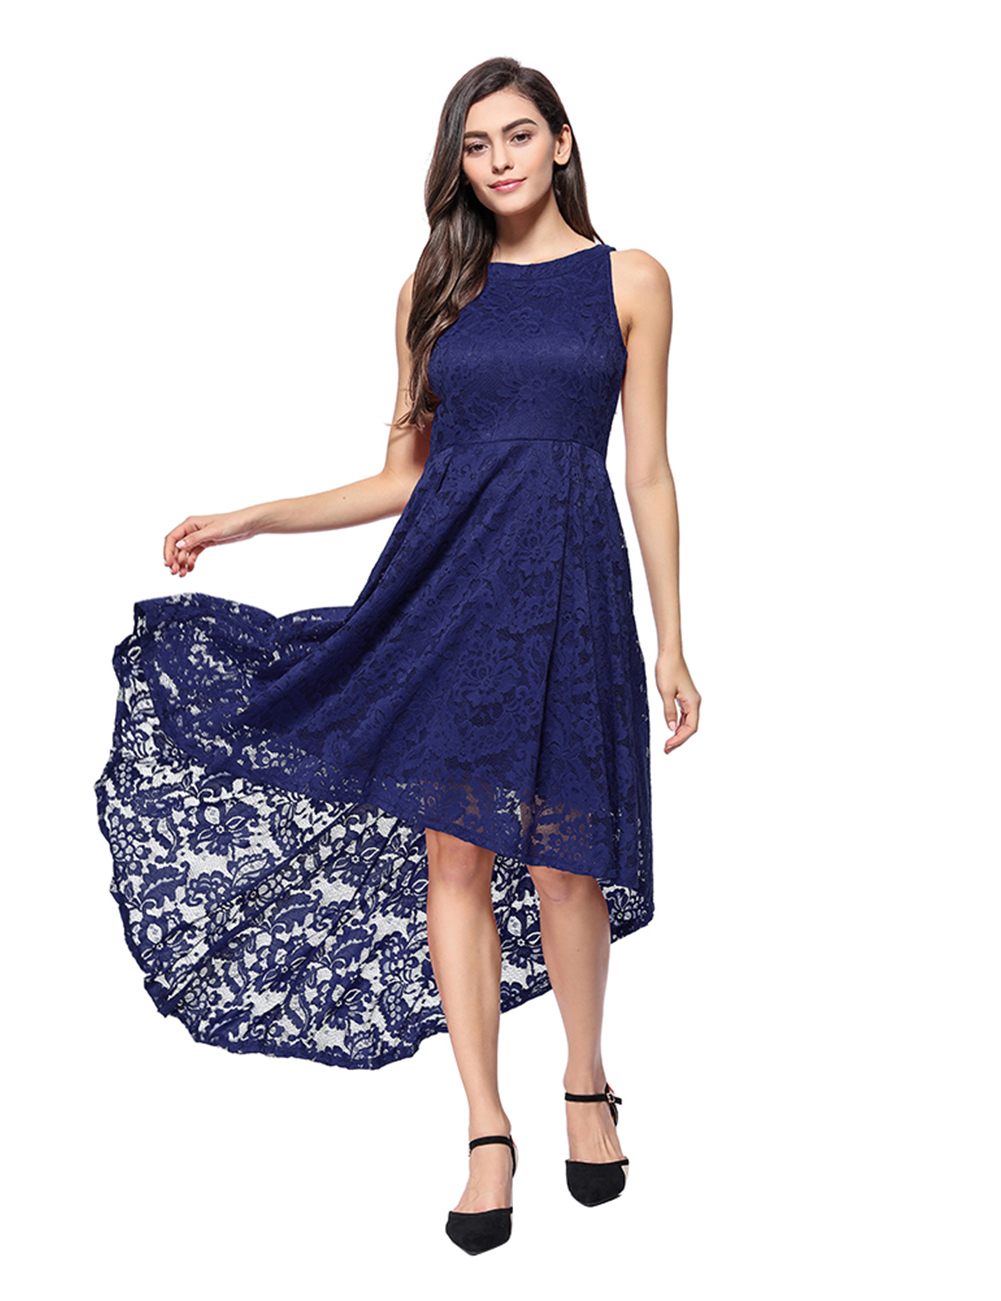 //cdn.affectcloud.com/feelingirldress/upload/imgs/2019-06-11/VZ190800-BU6/VZ190800-BU6.jpg